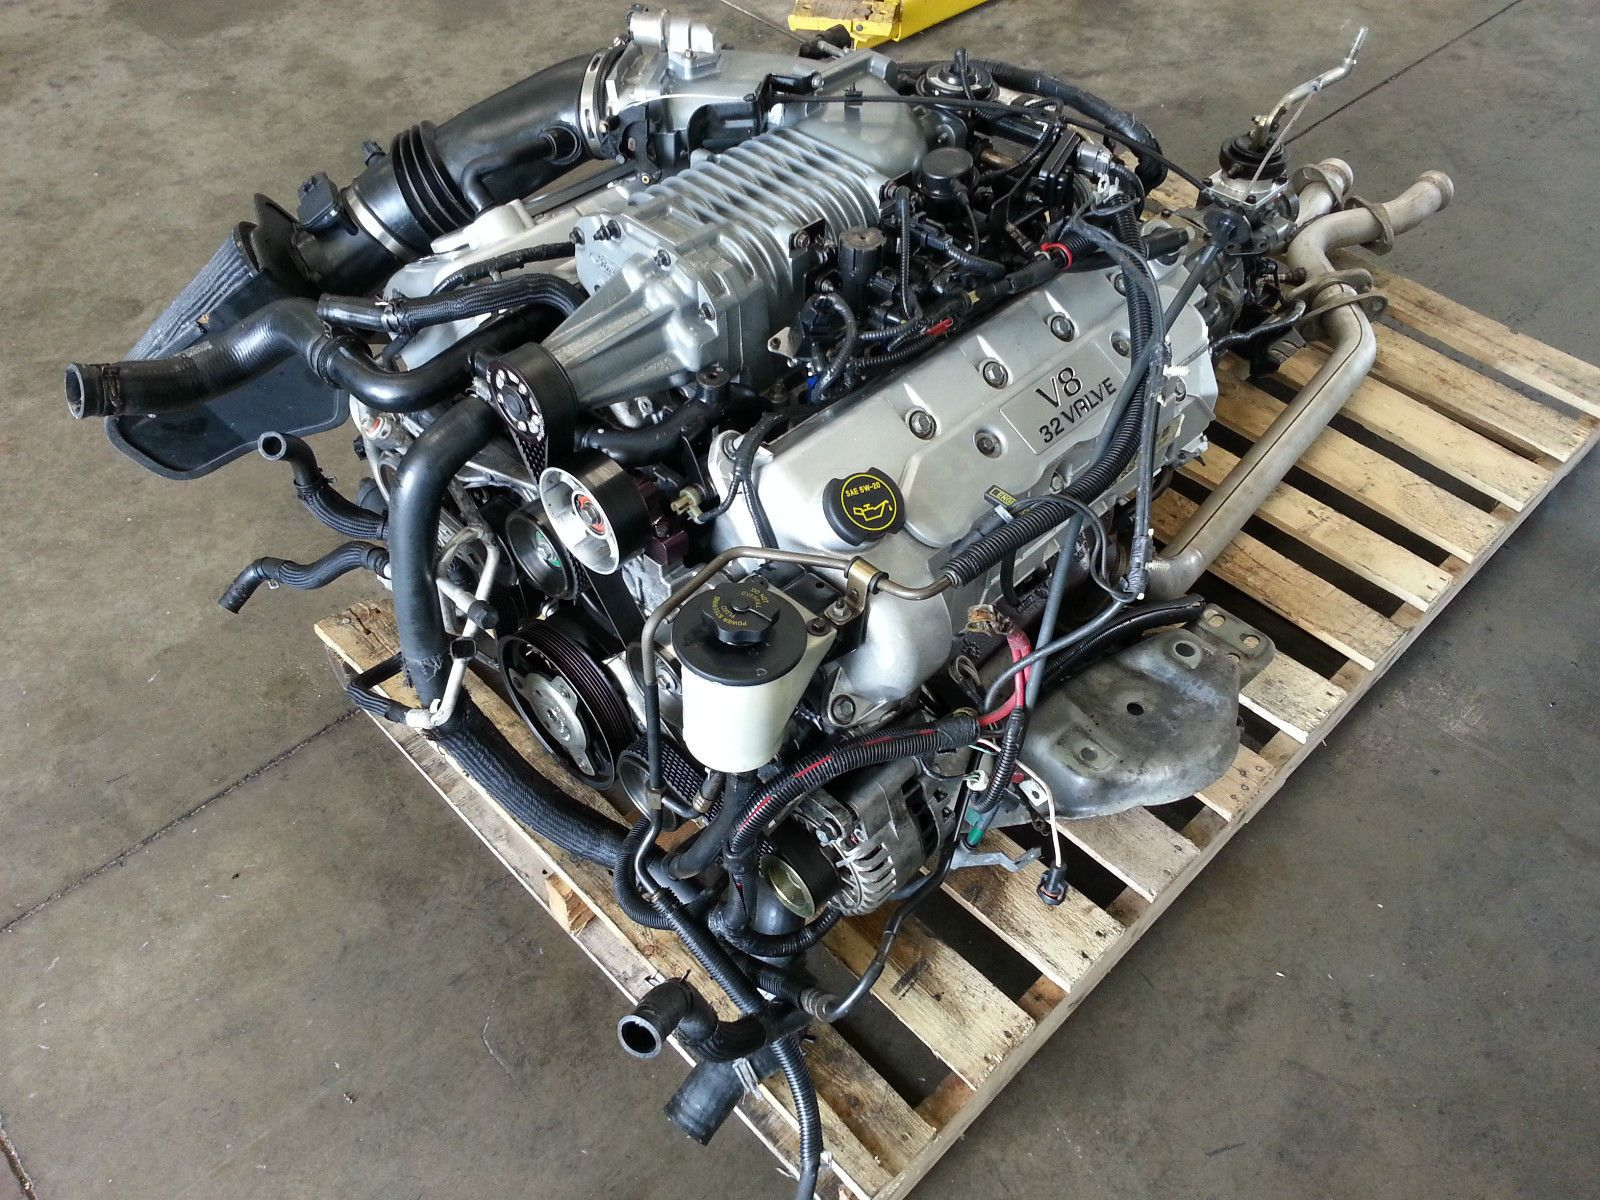 2003 2004 Mustang Cobra 4 6 V8 Engine T56 Transmission Dohc